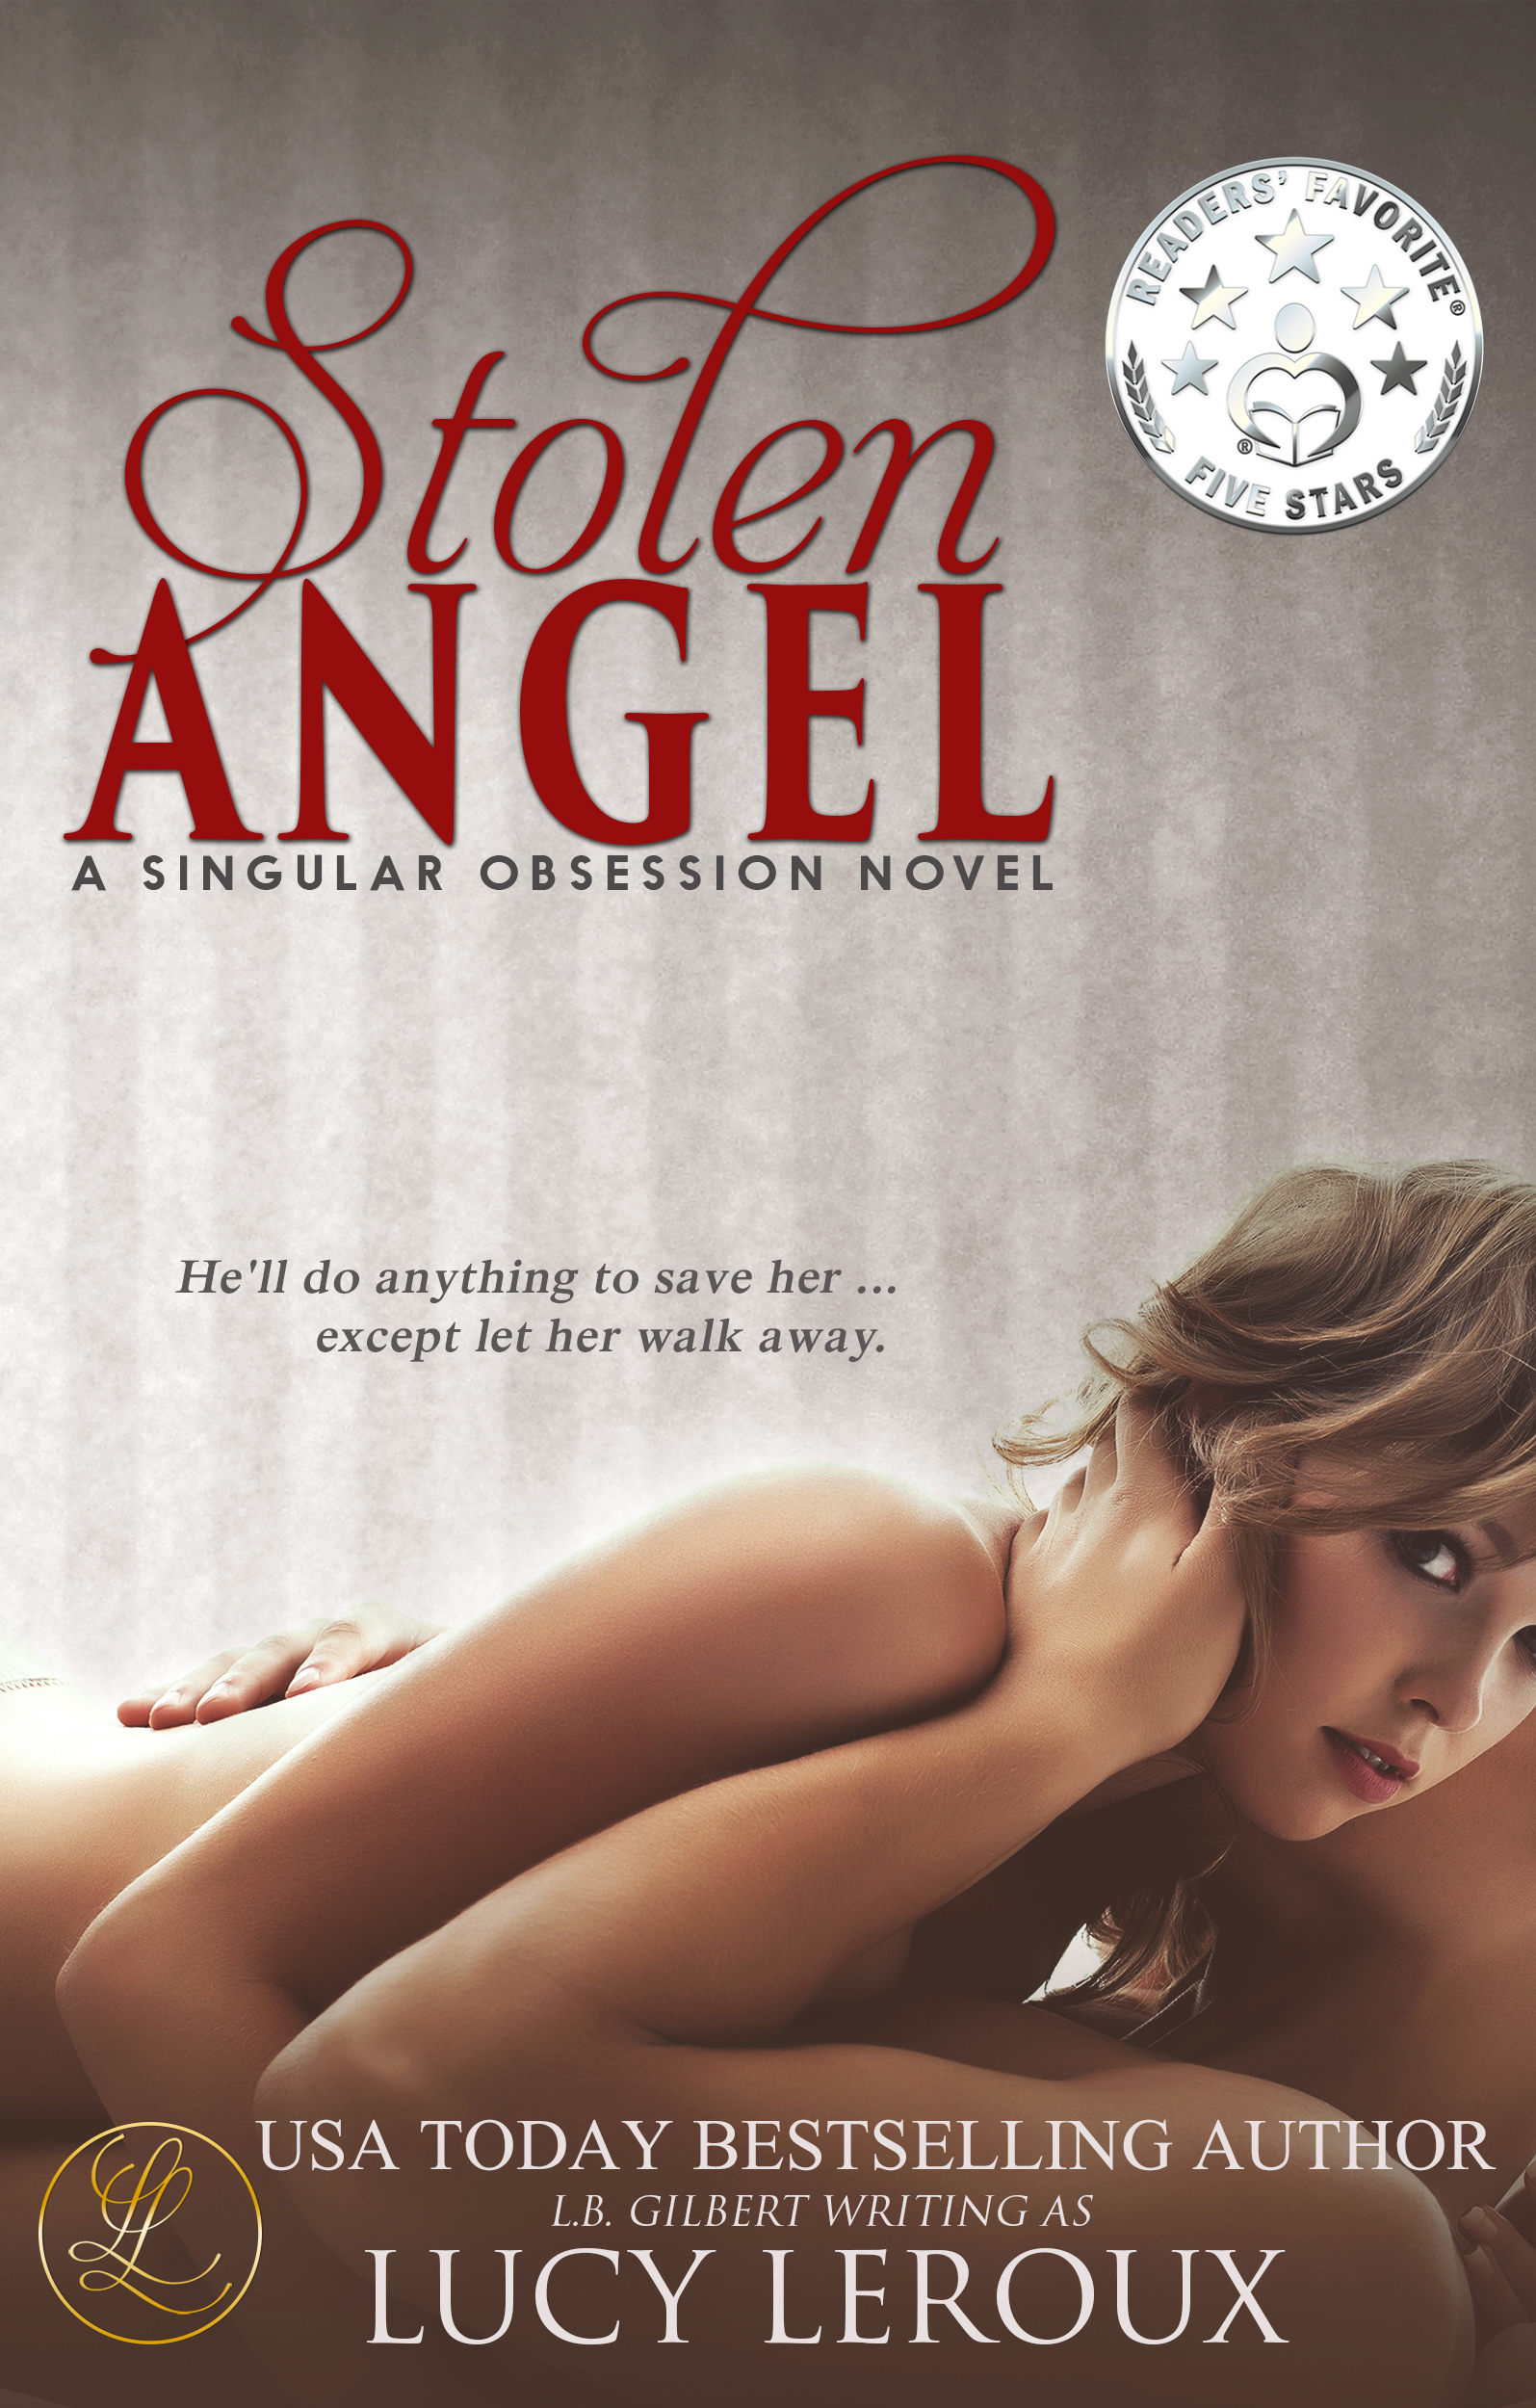 Stolen Angel, A Singular Obsession Book 3, excerpt